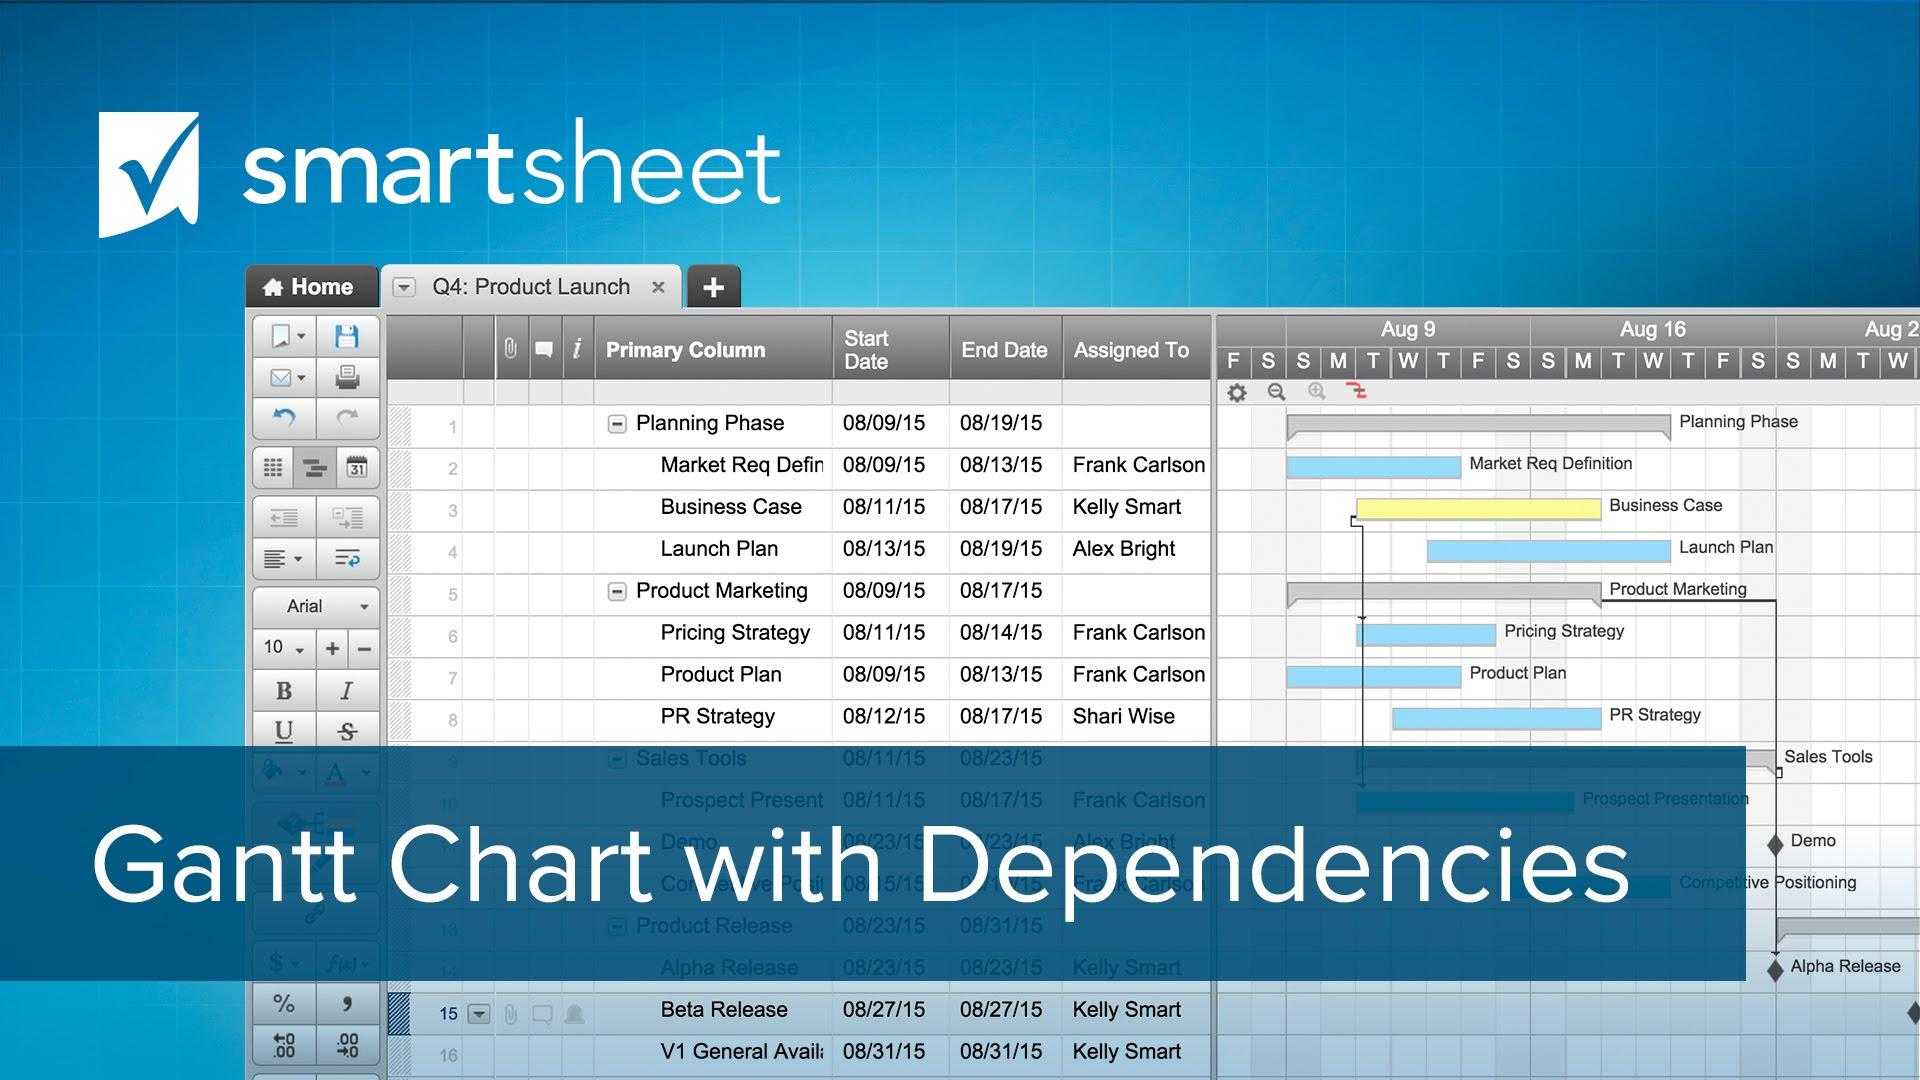 Make a Gantt Chart with Dependencies